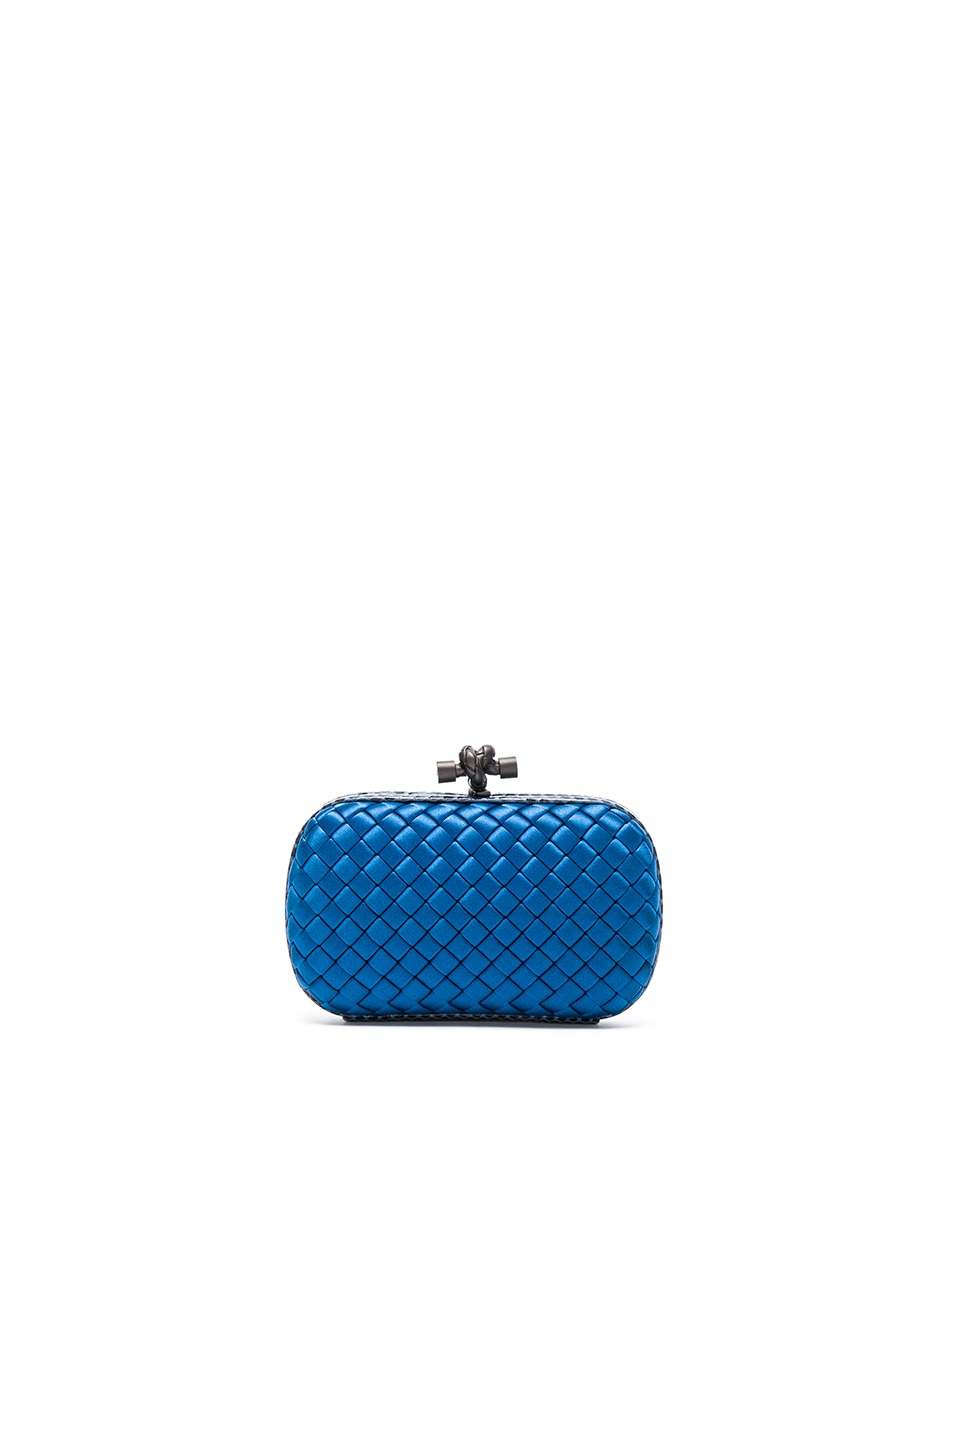 Image 1 of Bottega Veneta Knot Clutch in Peacock